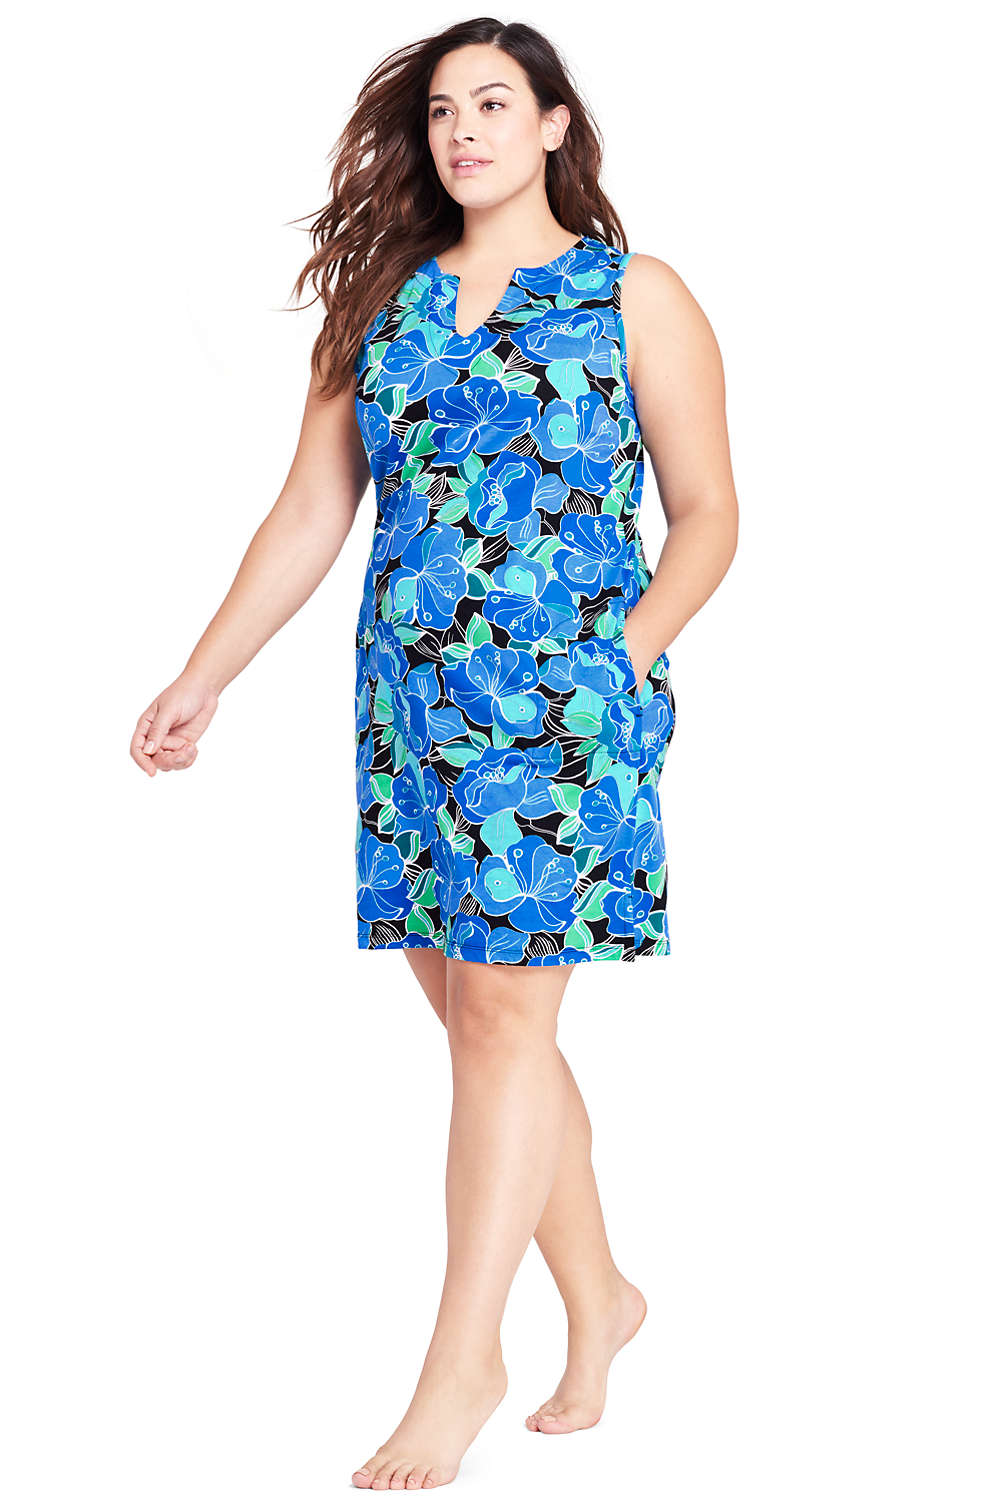 a96c67a378654 Women s Plus Size Cotton Jersey Tunic Dress Cover-up from Lands  End